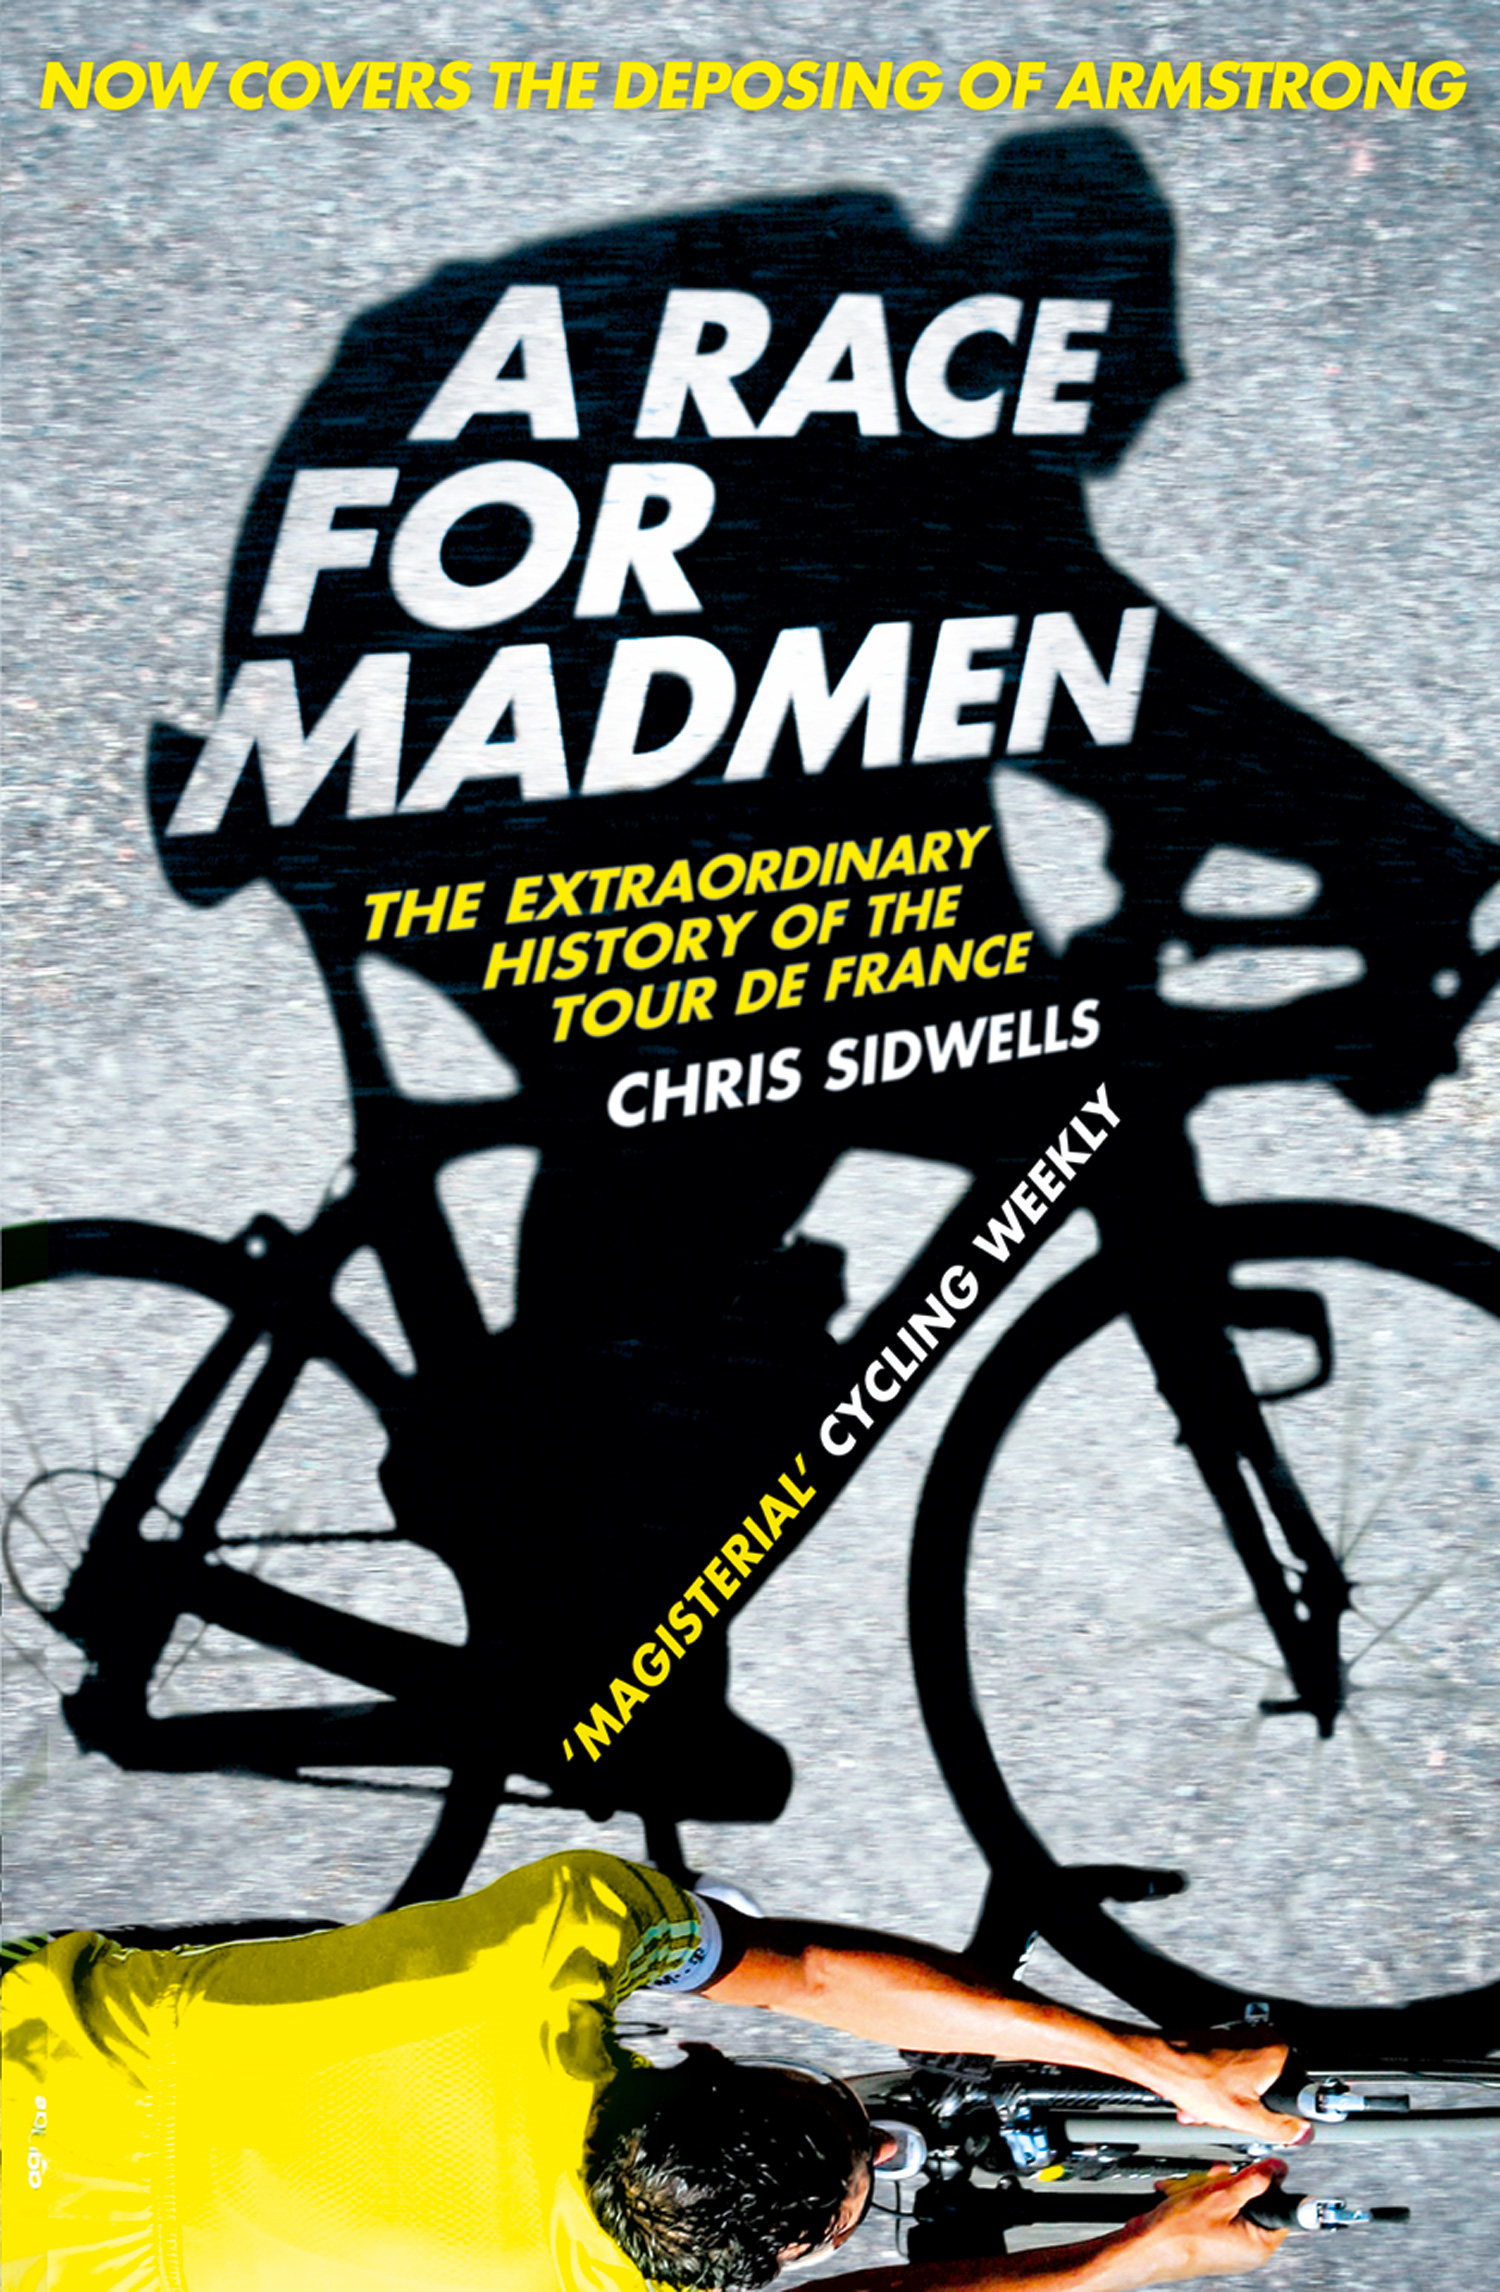 A Race for Madmen: A History of the Tour de France